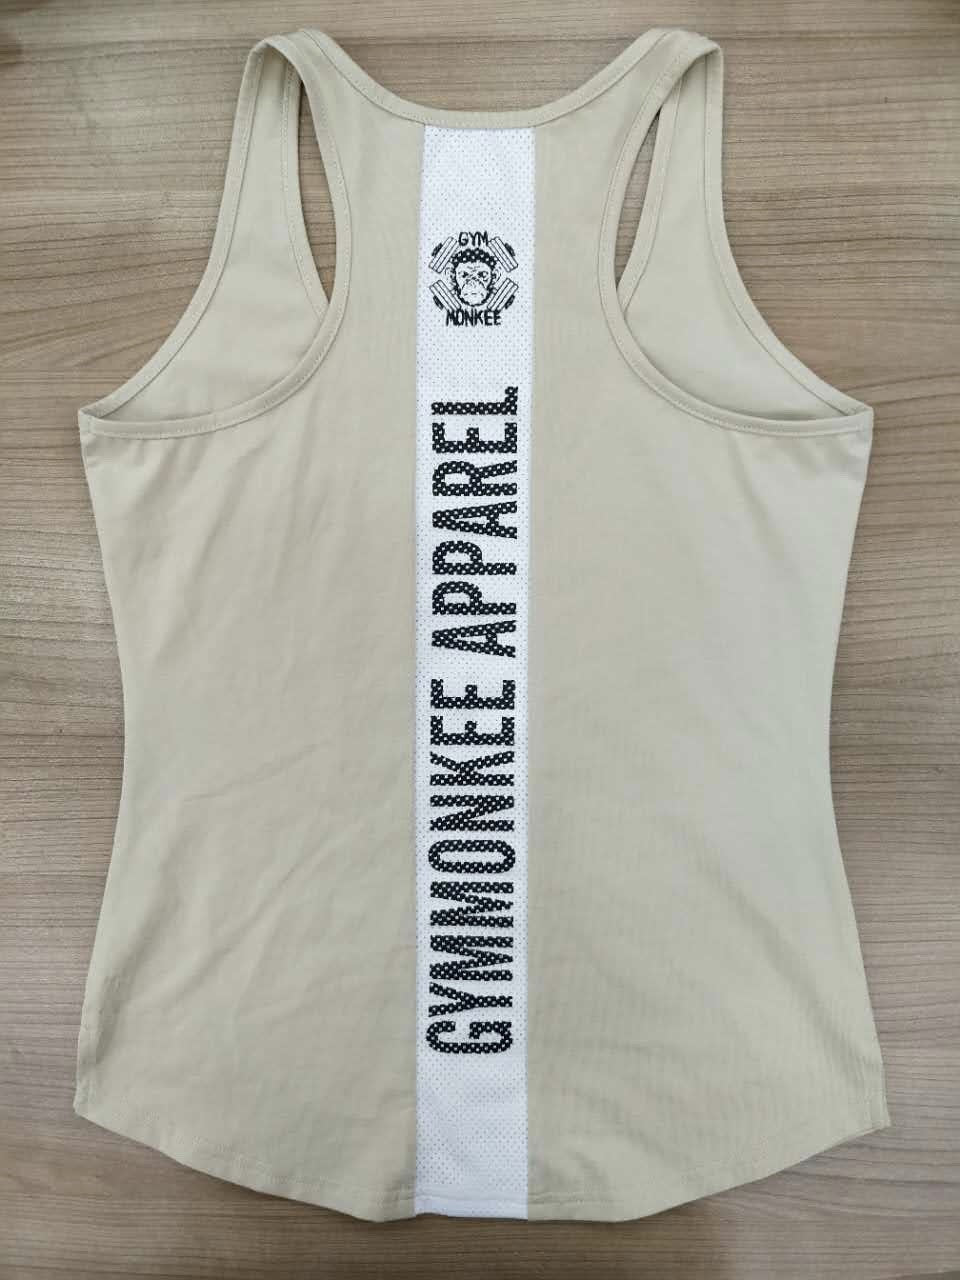 Gym Monkee - Ladies Beige Striped Tank BACK